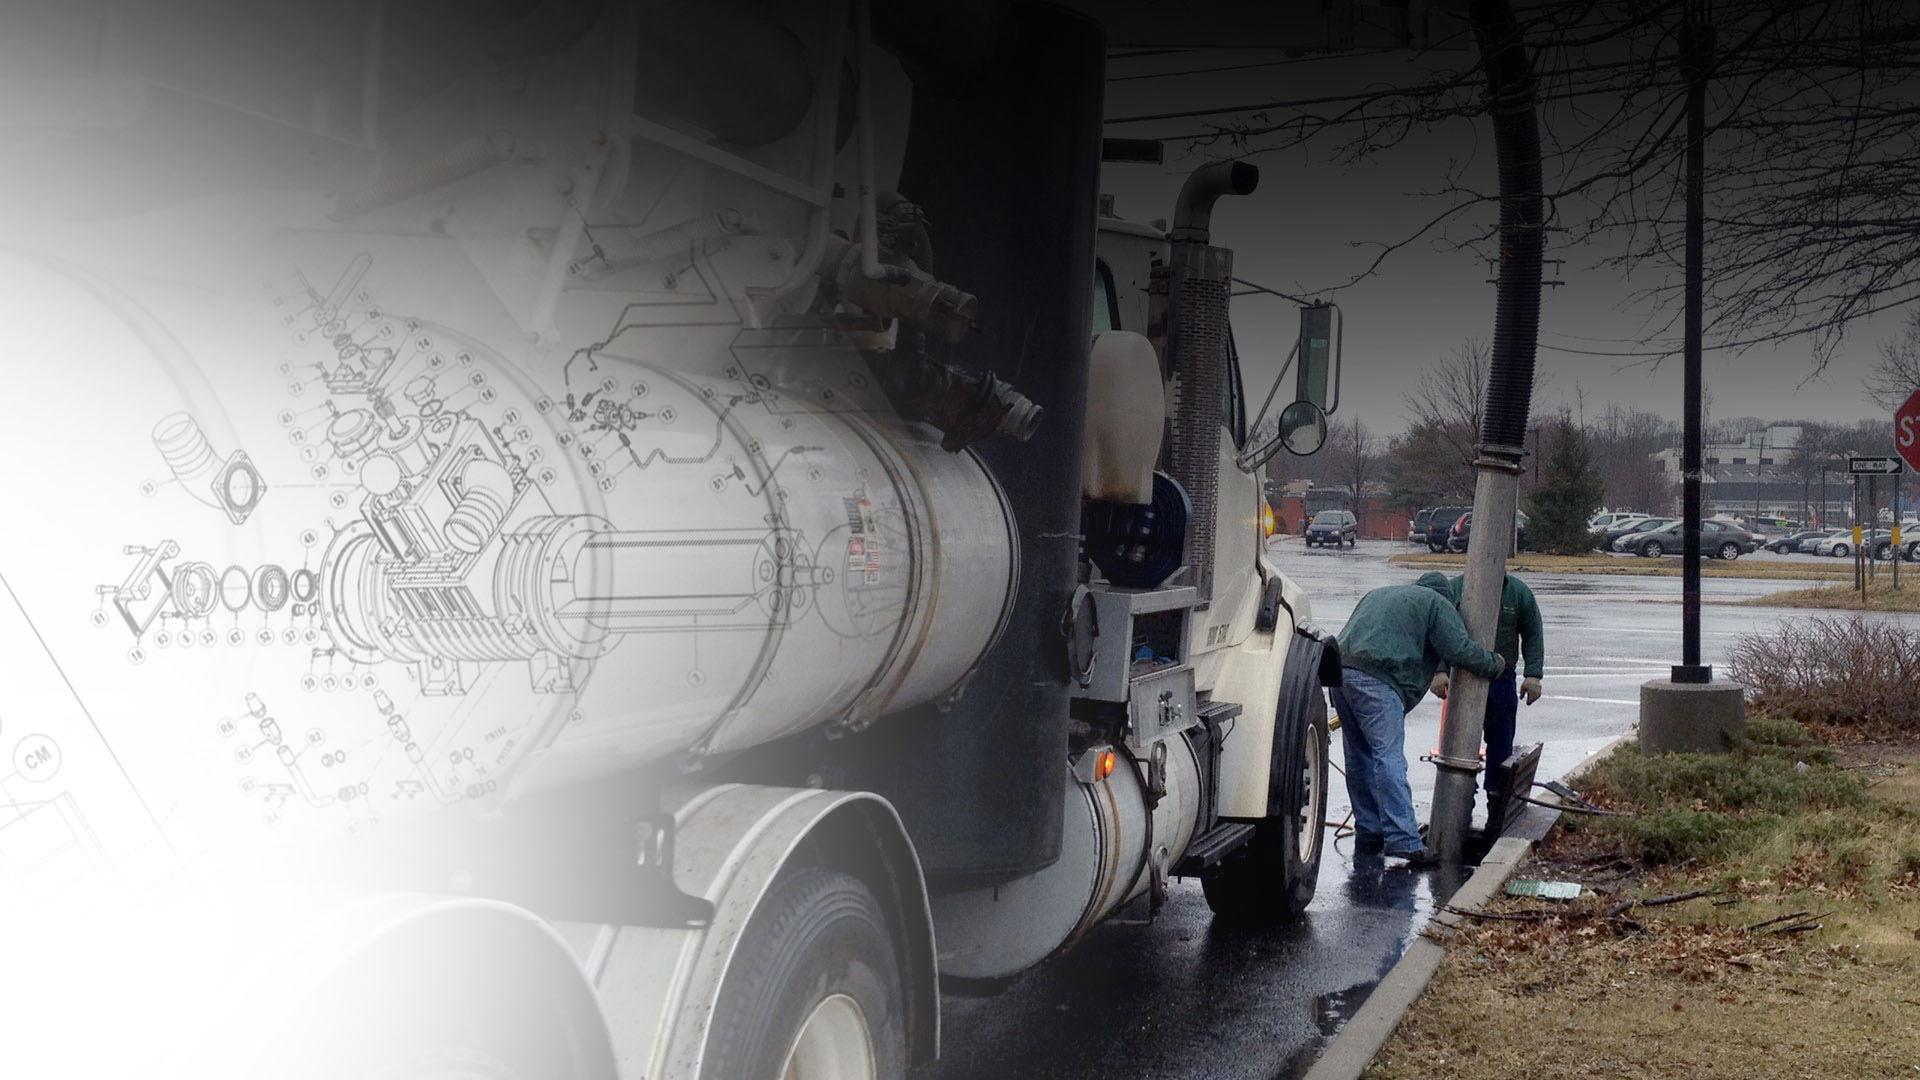 All Storm Drains Inc. | Vacuum Truck Service | Nassau & Suffolk County, Long Island, NY | Phone: 516.825.1010 Fax: 631.475.2898 | George@AllStormDrains.com